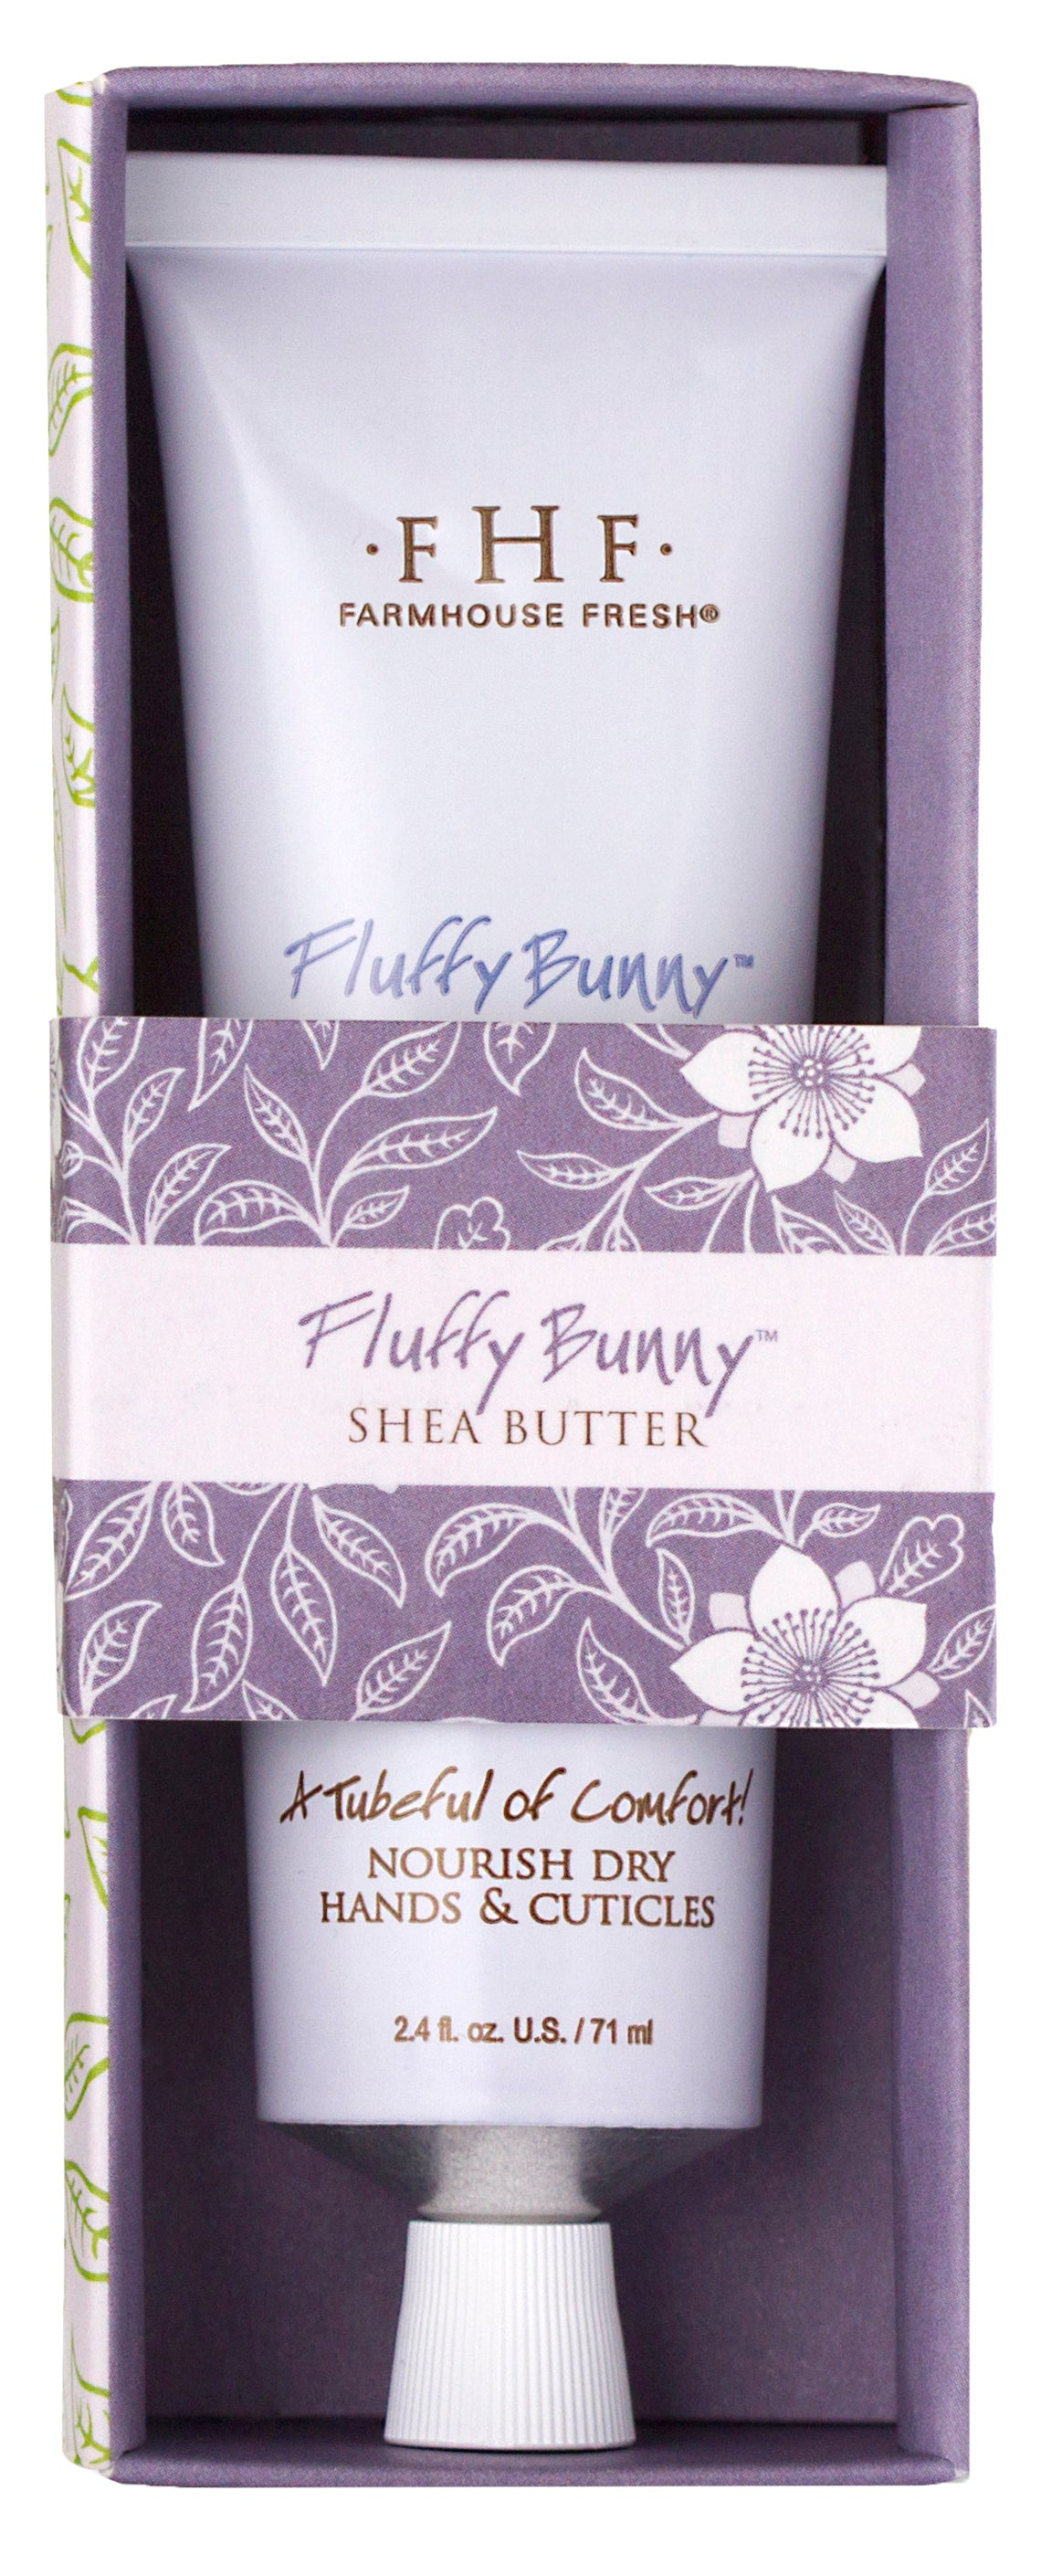 A tubeful of joy.   Drench your hands in irresistible yum!   our lightest, fluffiest scent will swirl you into a dream-like state with mint-julep, cream, and just a hint of lavender. It's fresh, but uplifting and delicious at the same time.